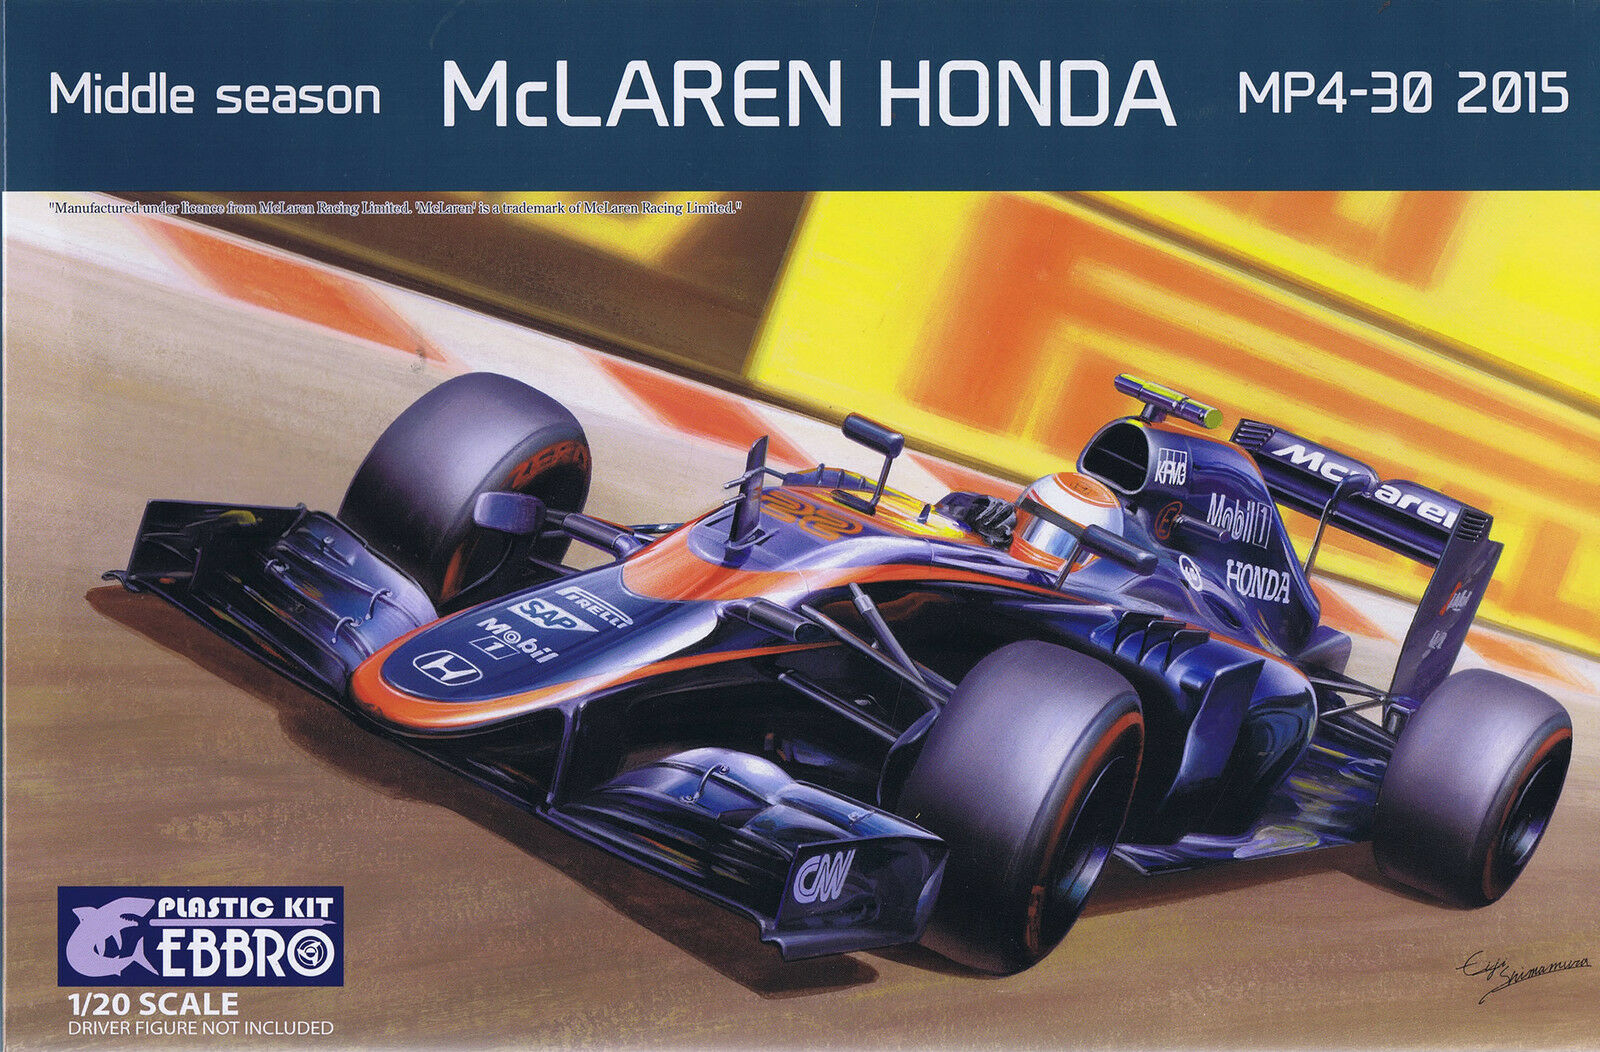 Ebbro 1 20 Middle Season McLaren Honda MP4-30 2015 Plastic Model Kit